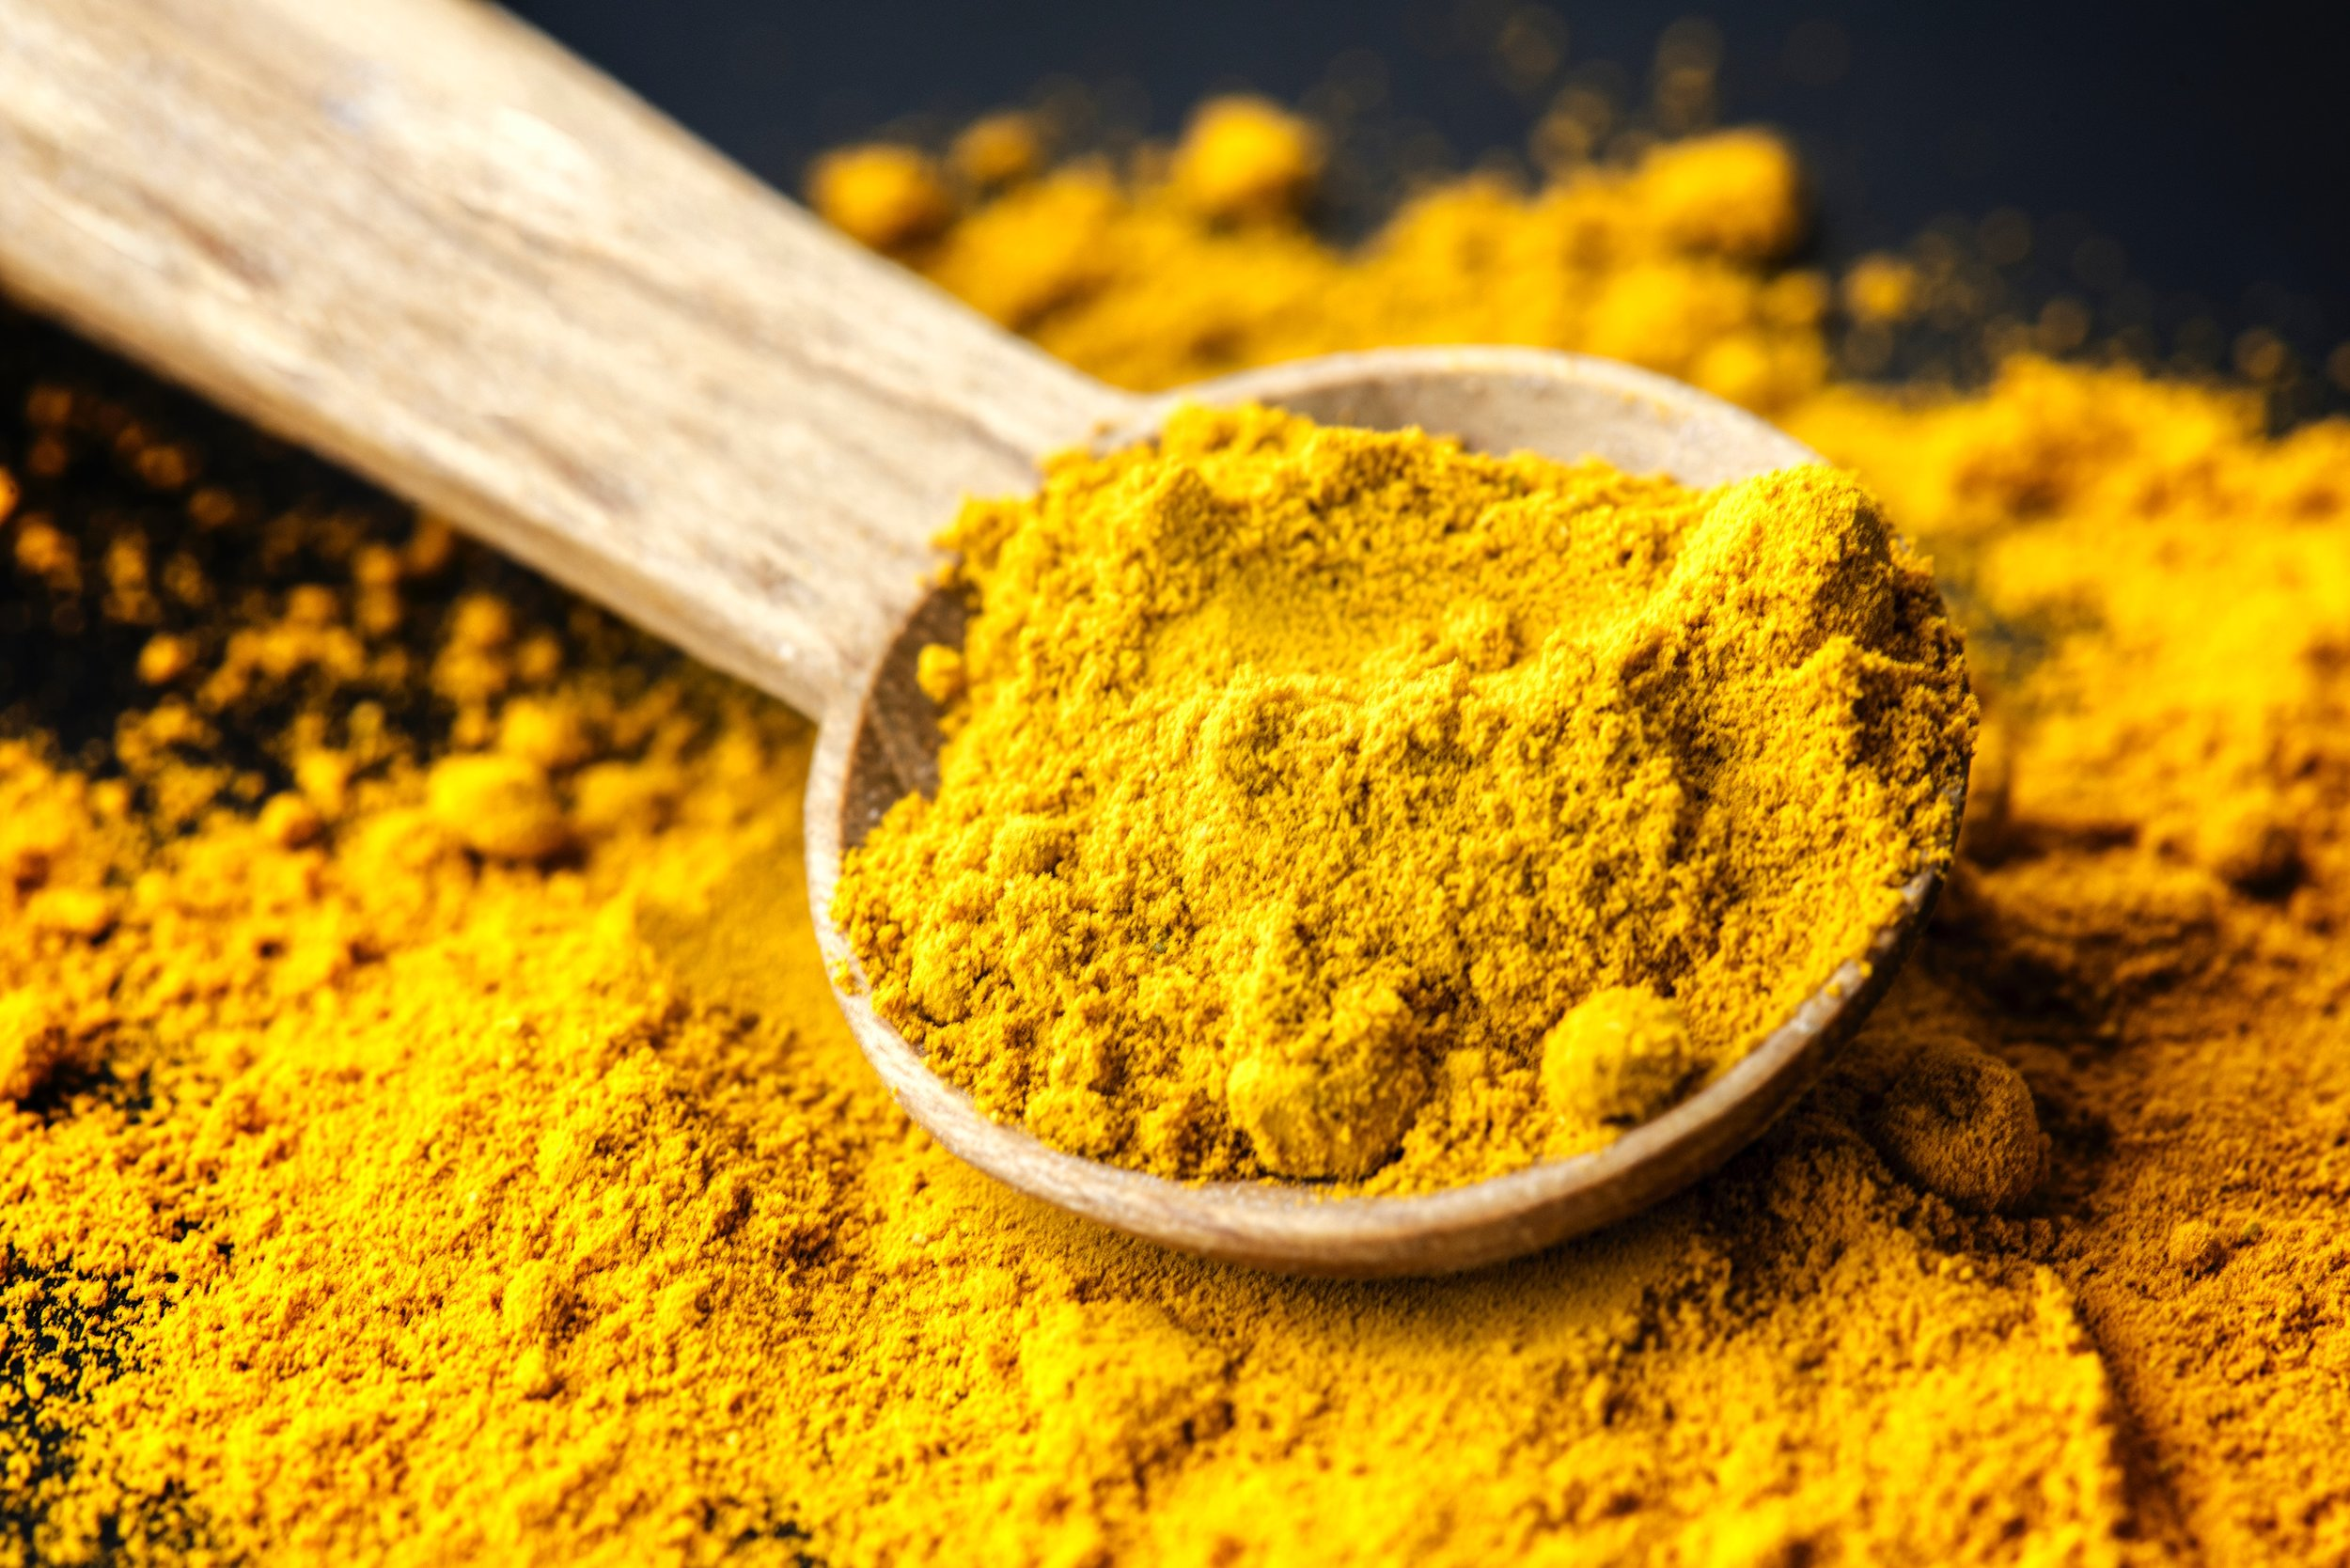 Turmeric contains curcumin, which has numerous health benefits including anti-inflammatory and antioxidant properties, protecting healthy cells from free radicals, which can cause damage. Consuming turmeric with black pepper increases the amount of the curcumin the body can absorb. -